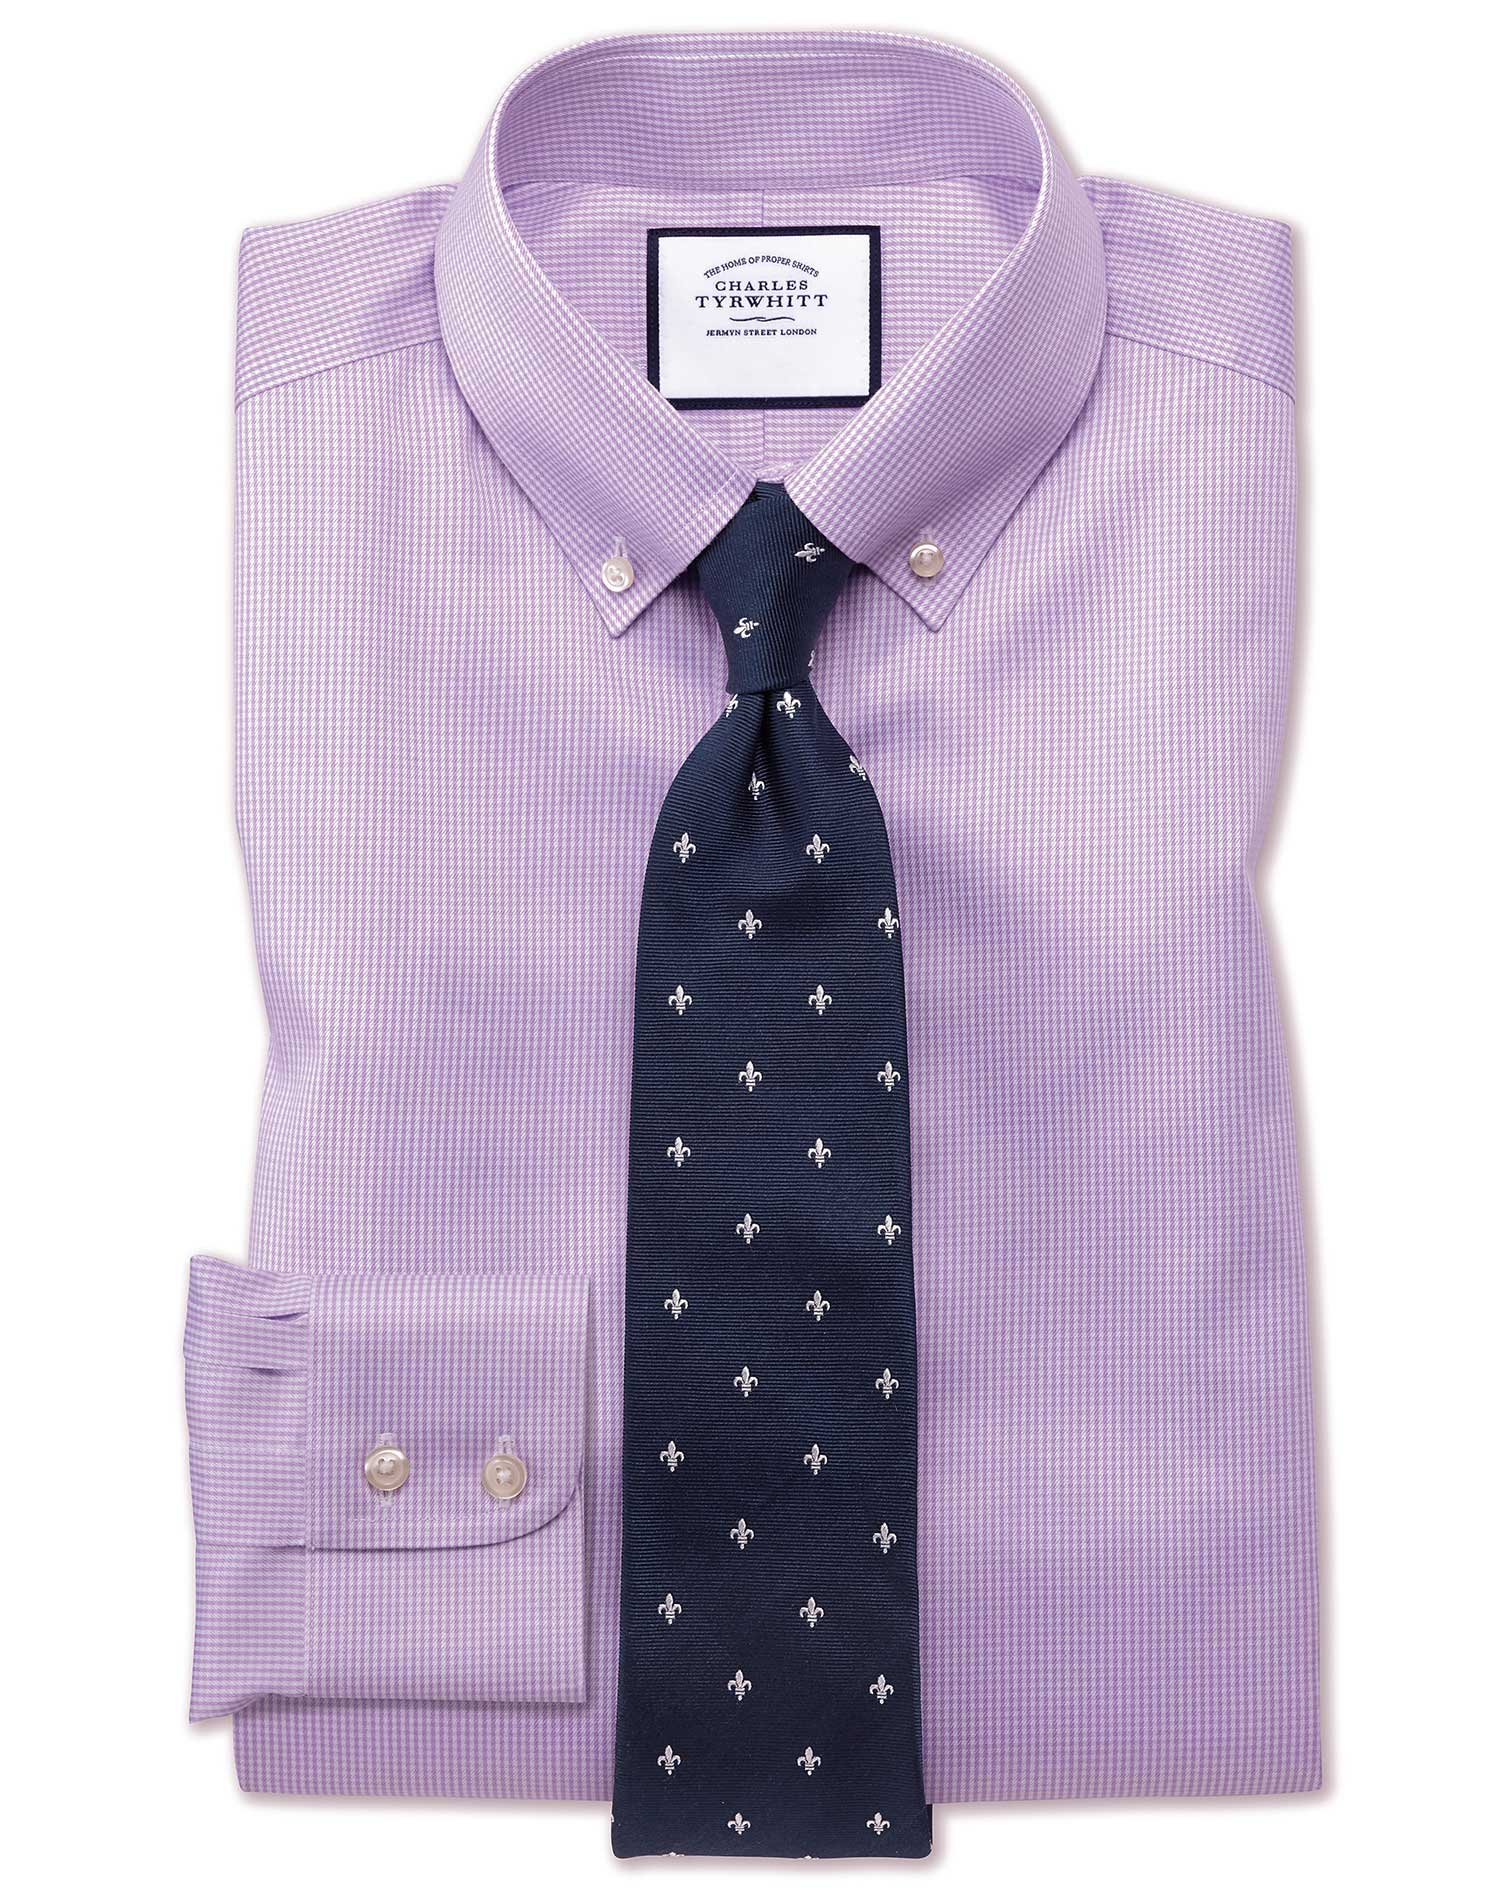 Slim Fit Button-Down Non-Iron Twill Puppytooth Lilac Cotton Formal Shirt Single Cuff Size 15.5/37 by